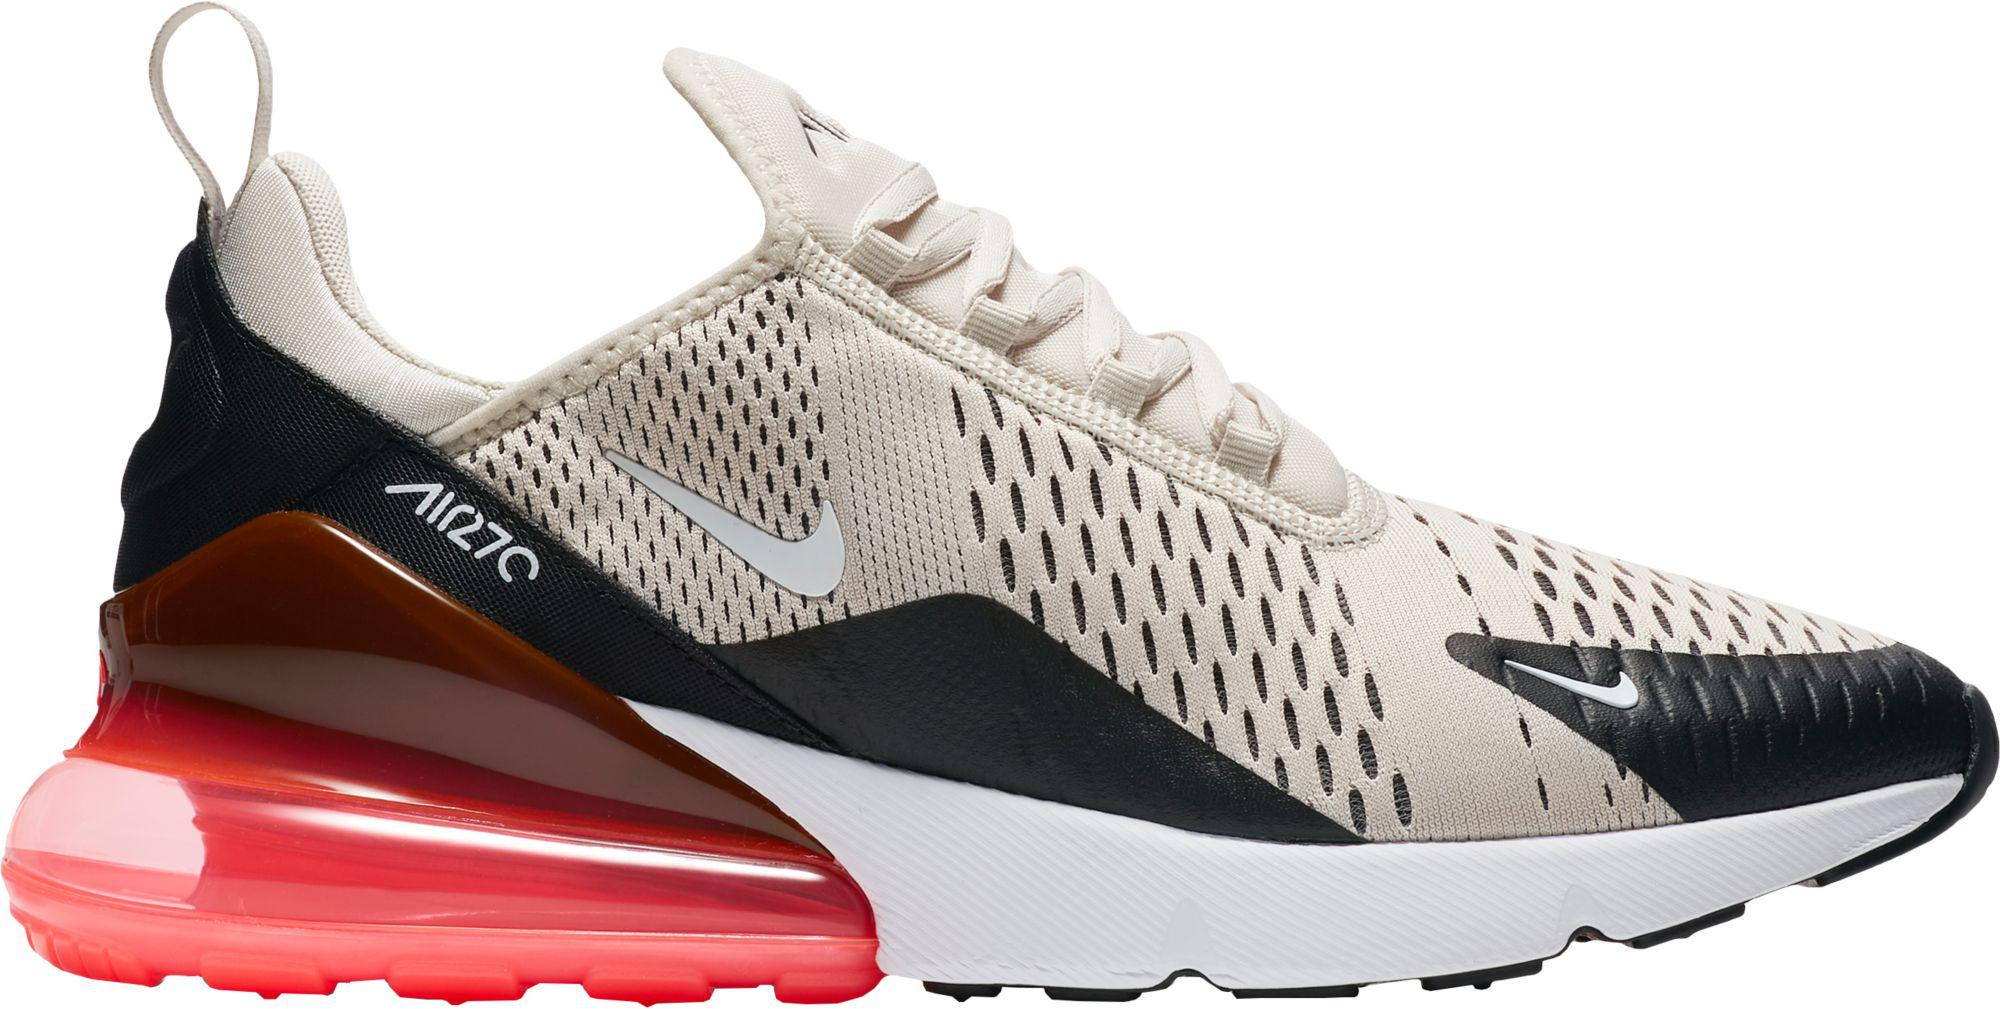 new concept 745d8 f0c8e Nike - Multicolor Air Max 270 Shoes for Men - Lyst